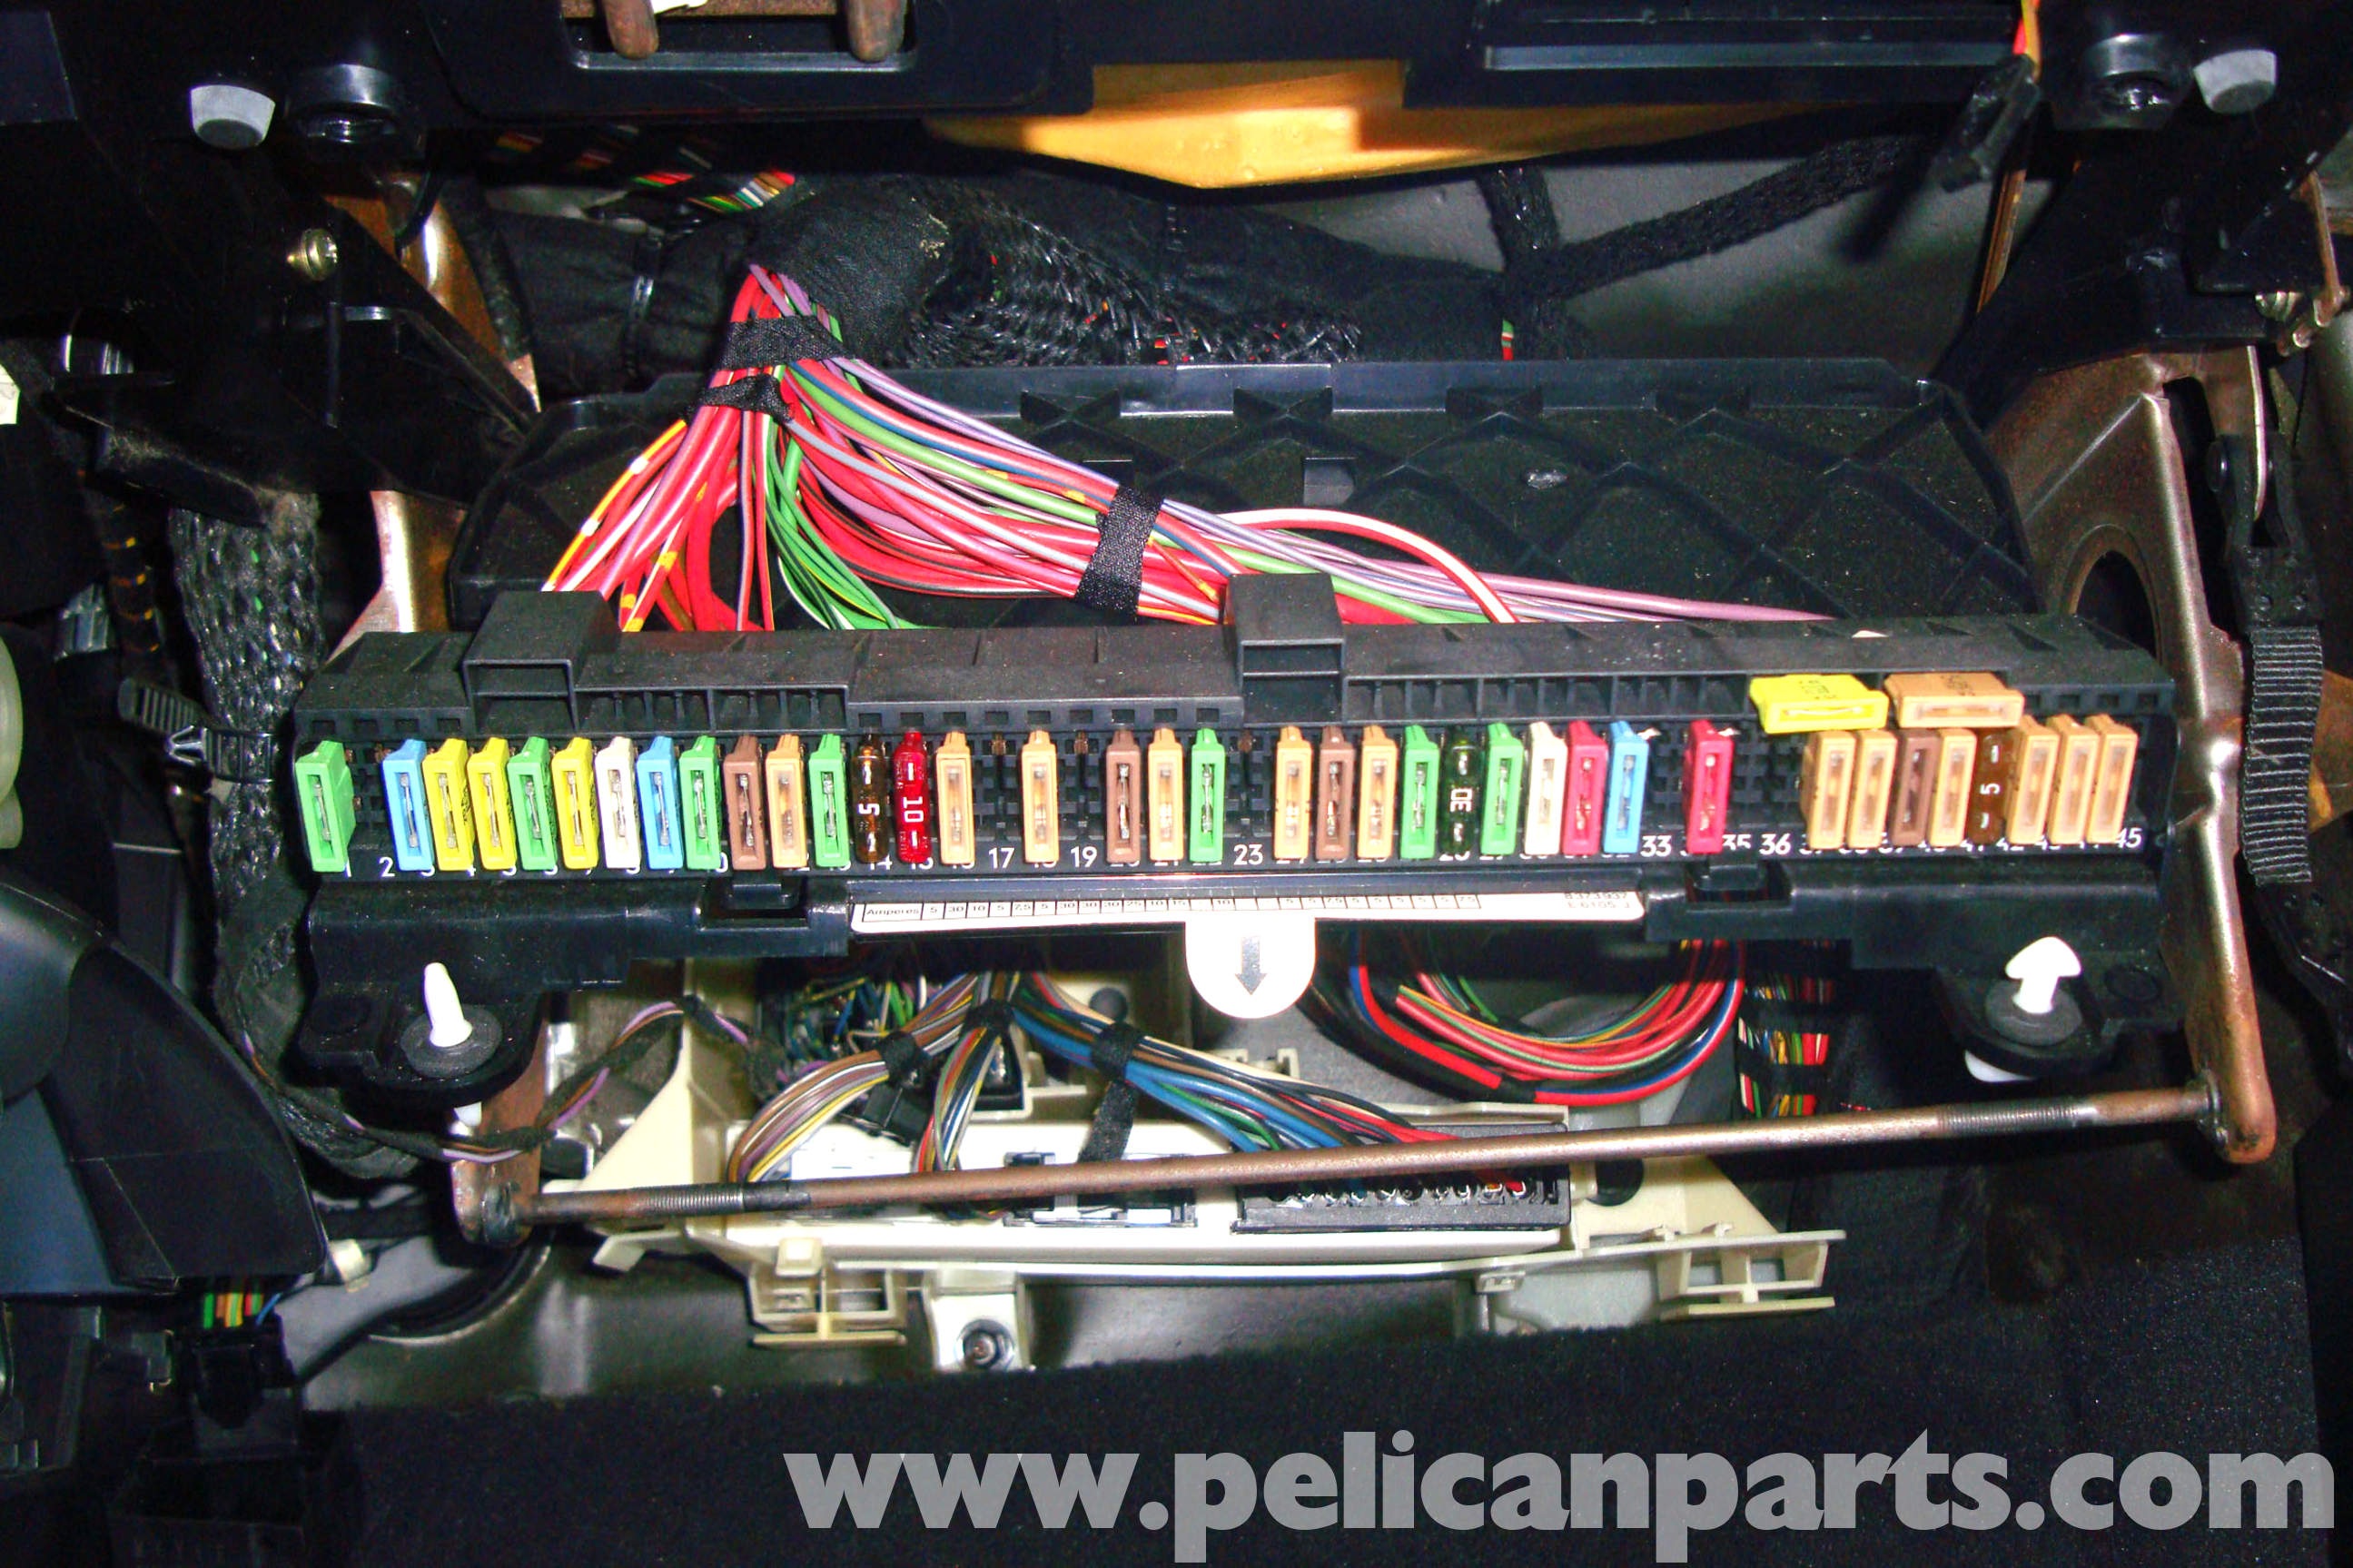 bmw e39 5 series blower motor testing 1997 2003 525i bmw 1 series e87 fuse box location bmw 1 series e87 fuse box location bmw 1 series e87 fuse box location bmw 1 series e87 fuse box location